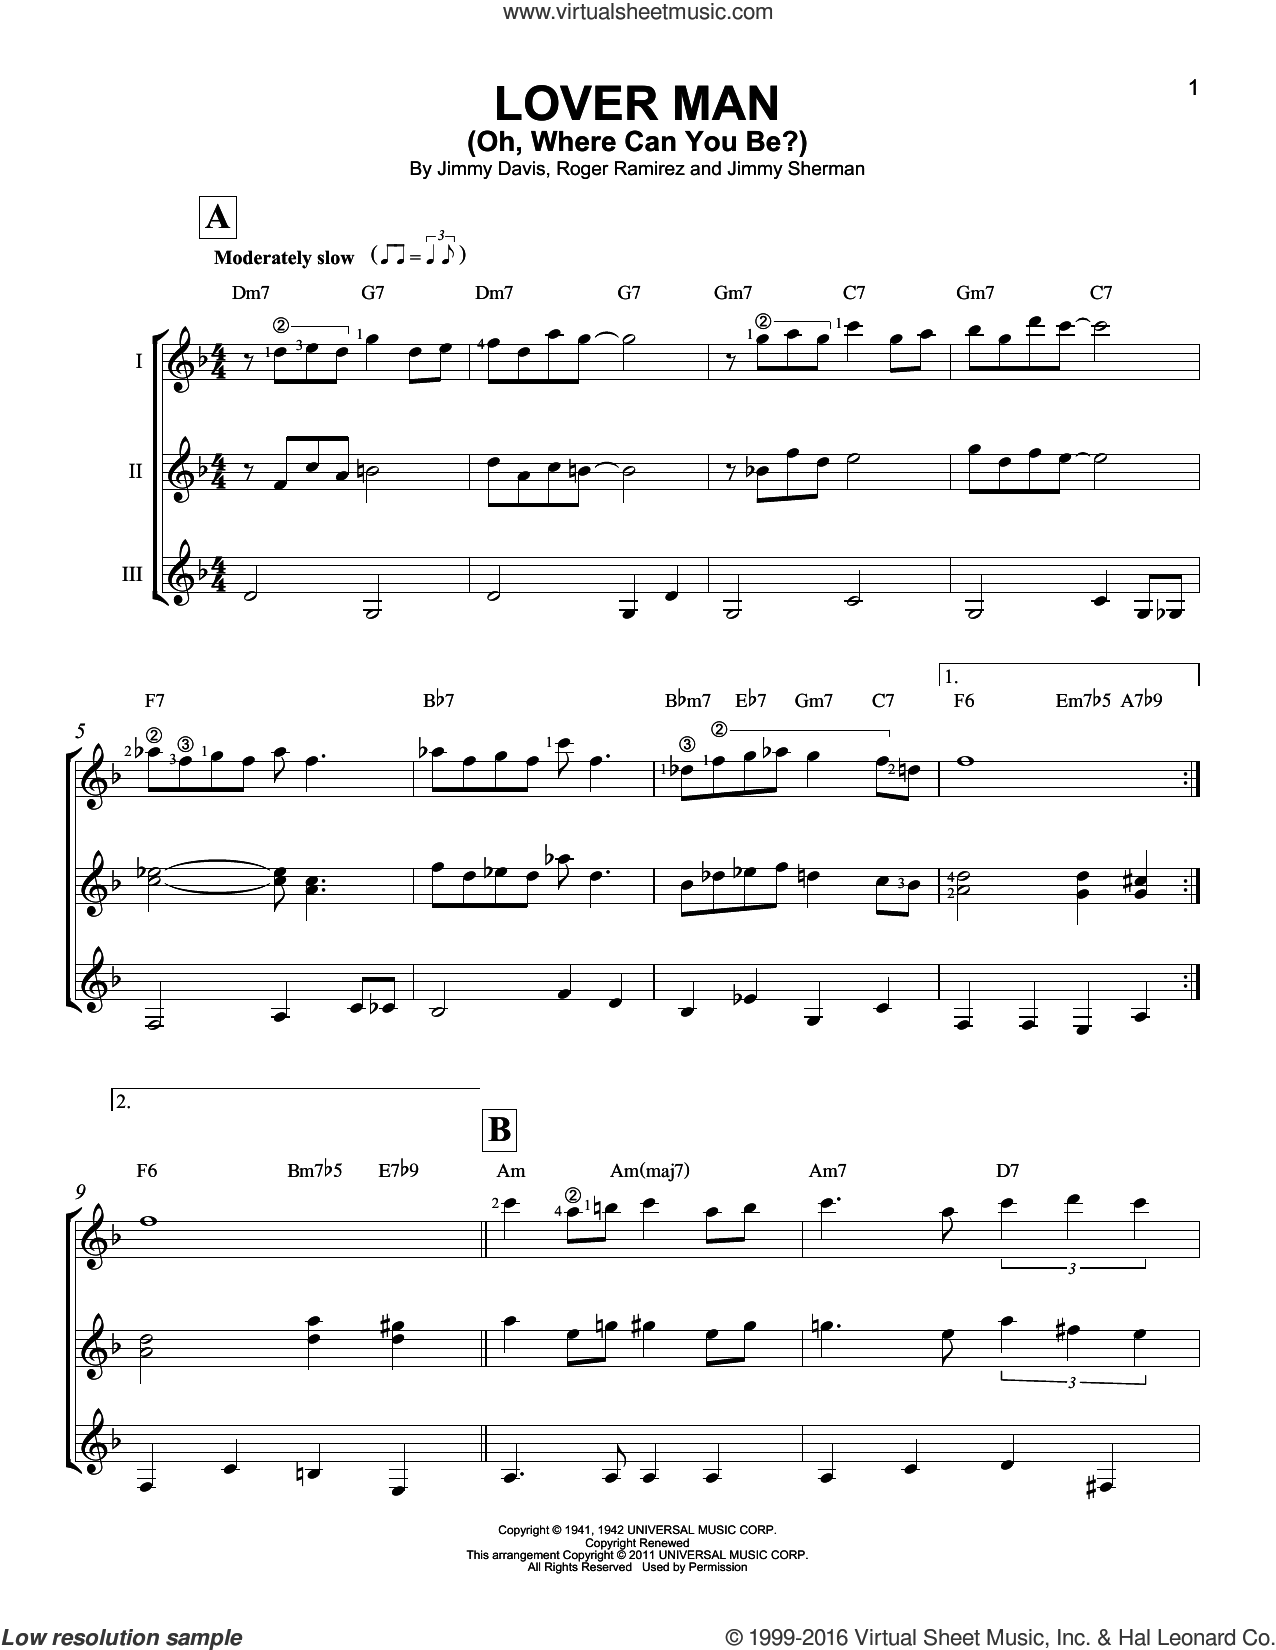 Lover Man (Oh, Where Can You Be?) sheet music for guitar ensemble by Billie Holiday, Jimmie Davis, Jimmy Sherman and Roger Ramirez, intermediate skill level